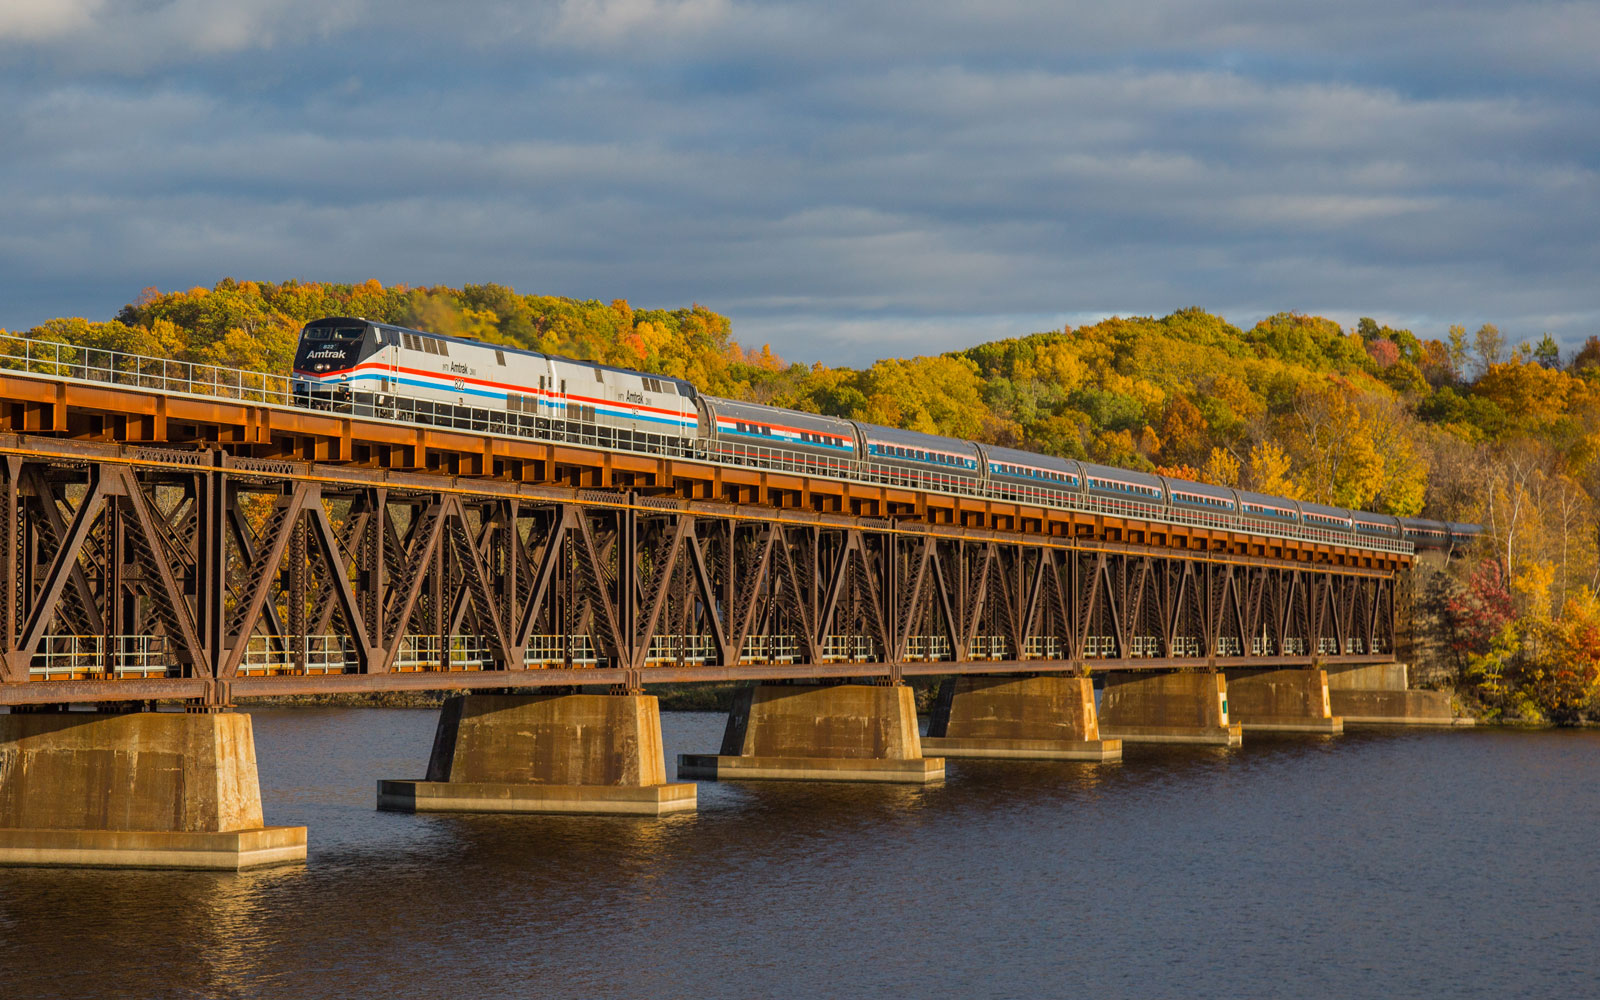 How to Take a Scenic Fall Foliage Trip on Amtrak